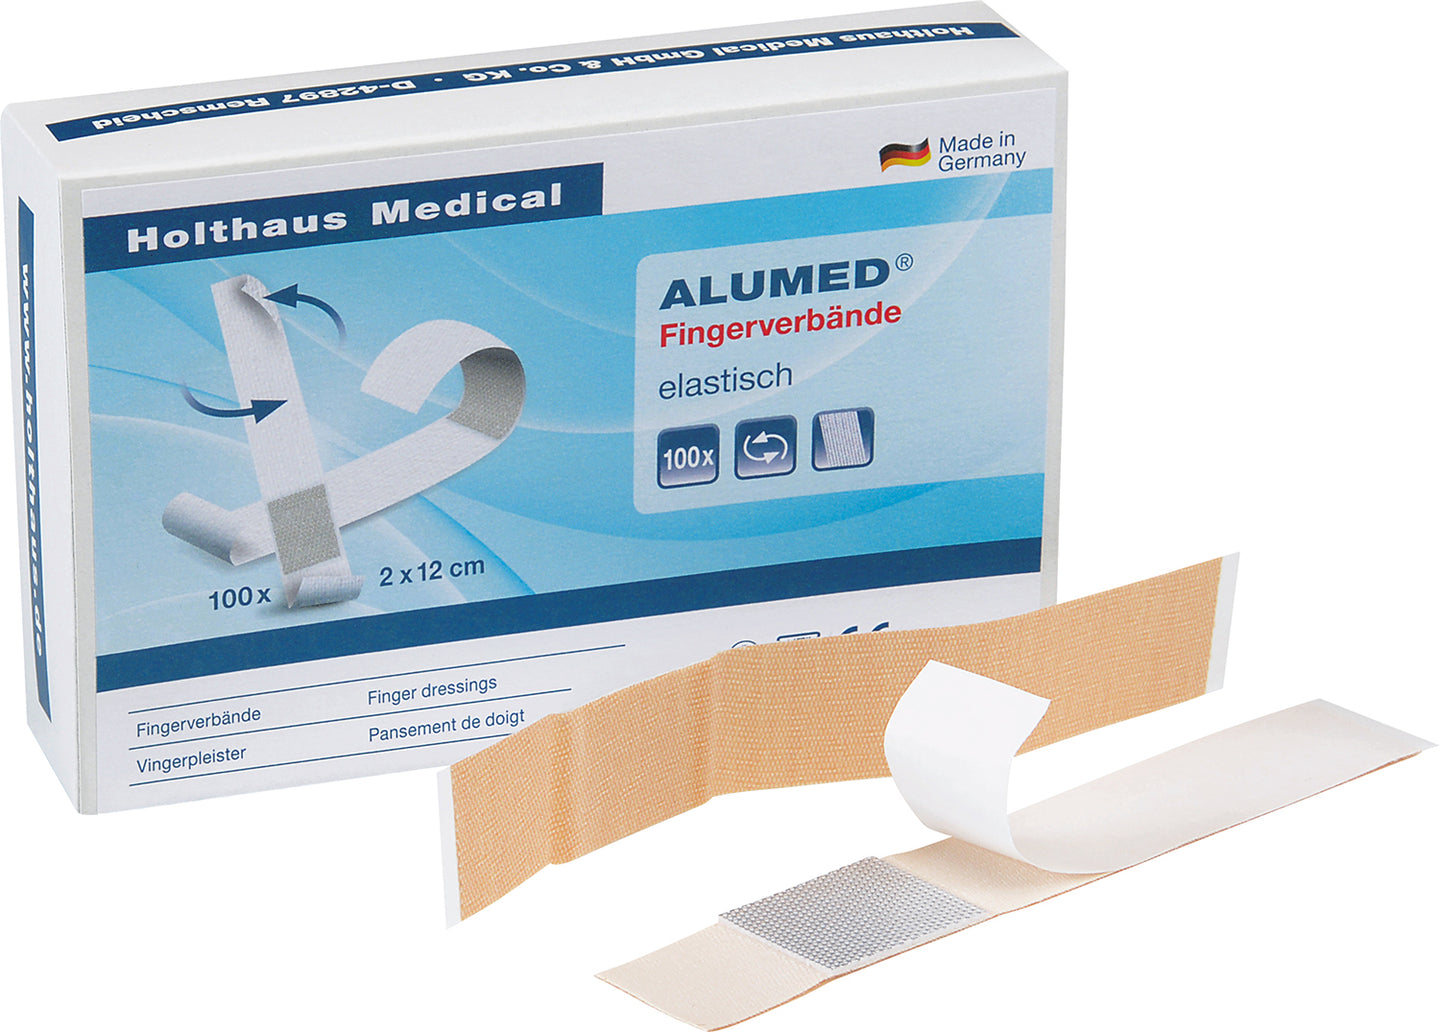 ALUMED Fingerverband, elastisch